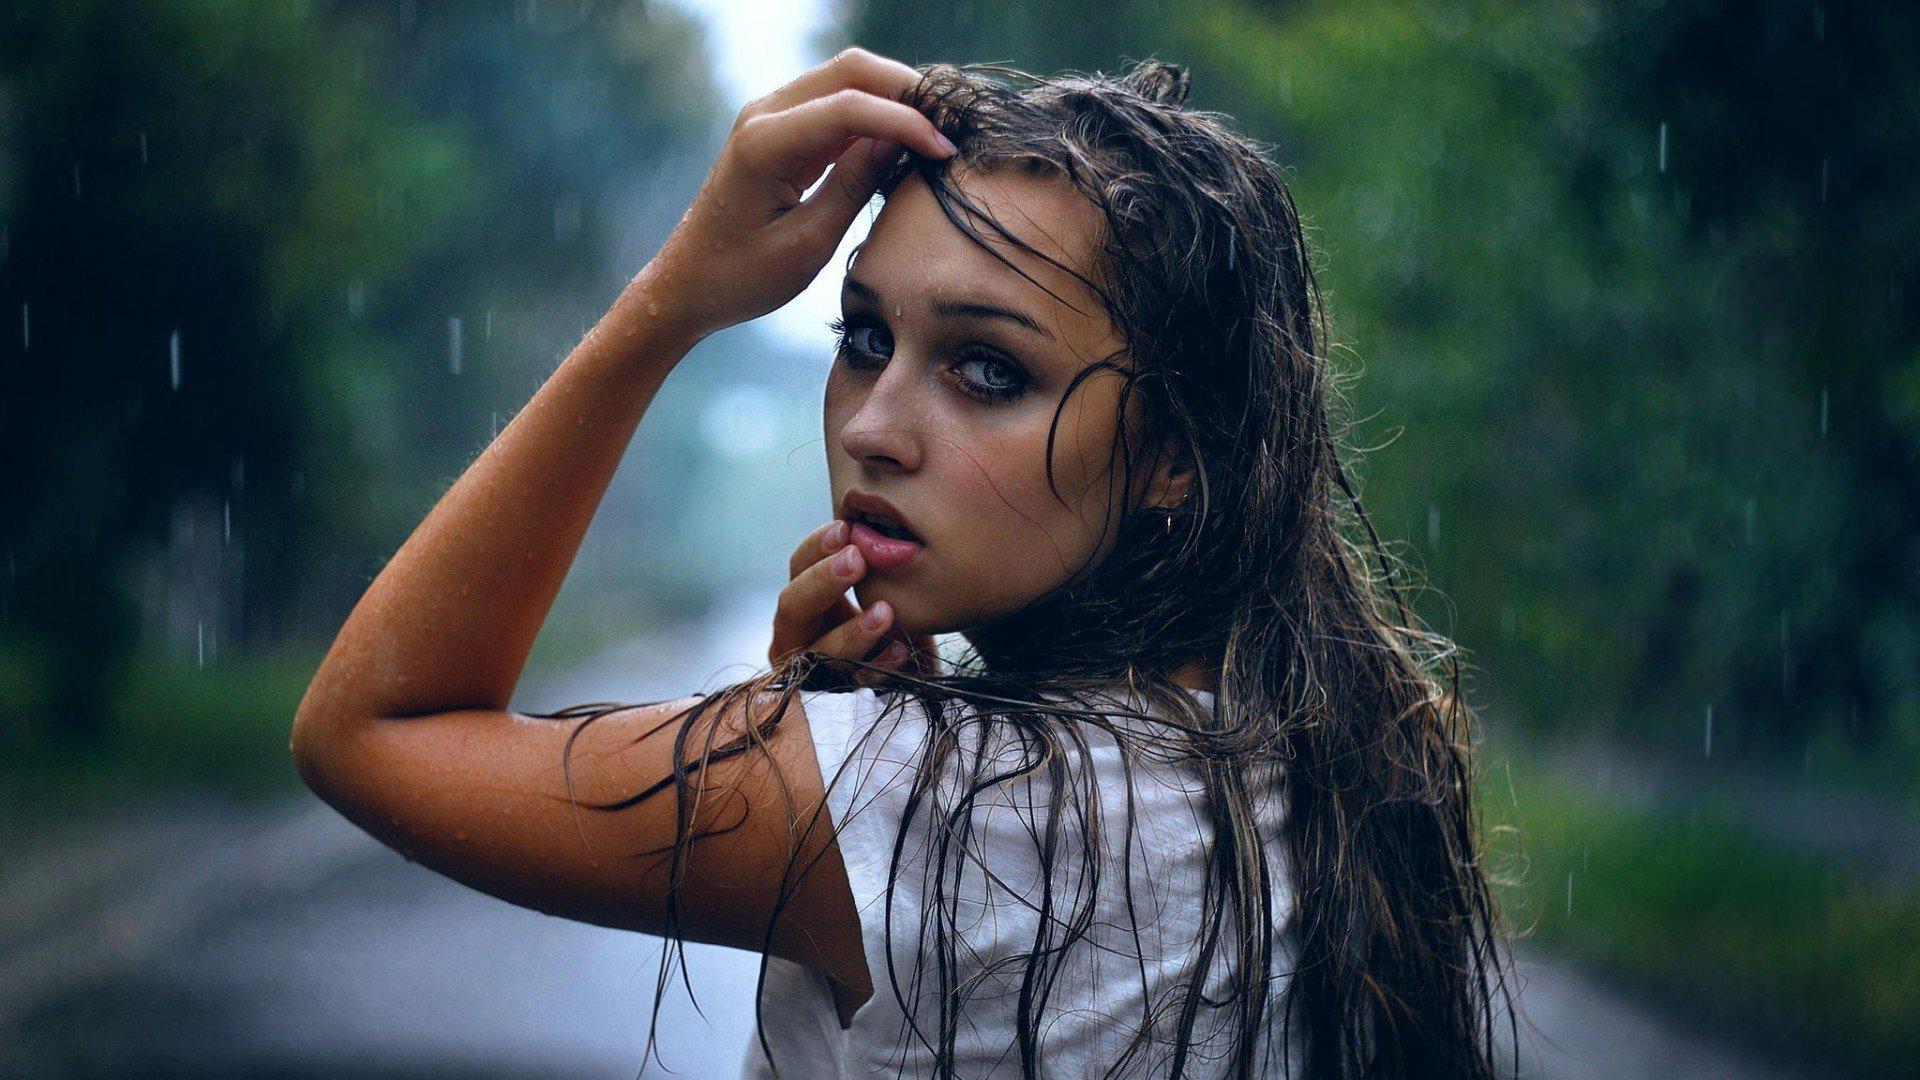 Girl In Rain Hd Girls 4k Wallpapers Images Backgrounds